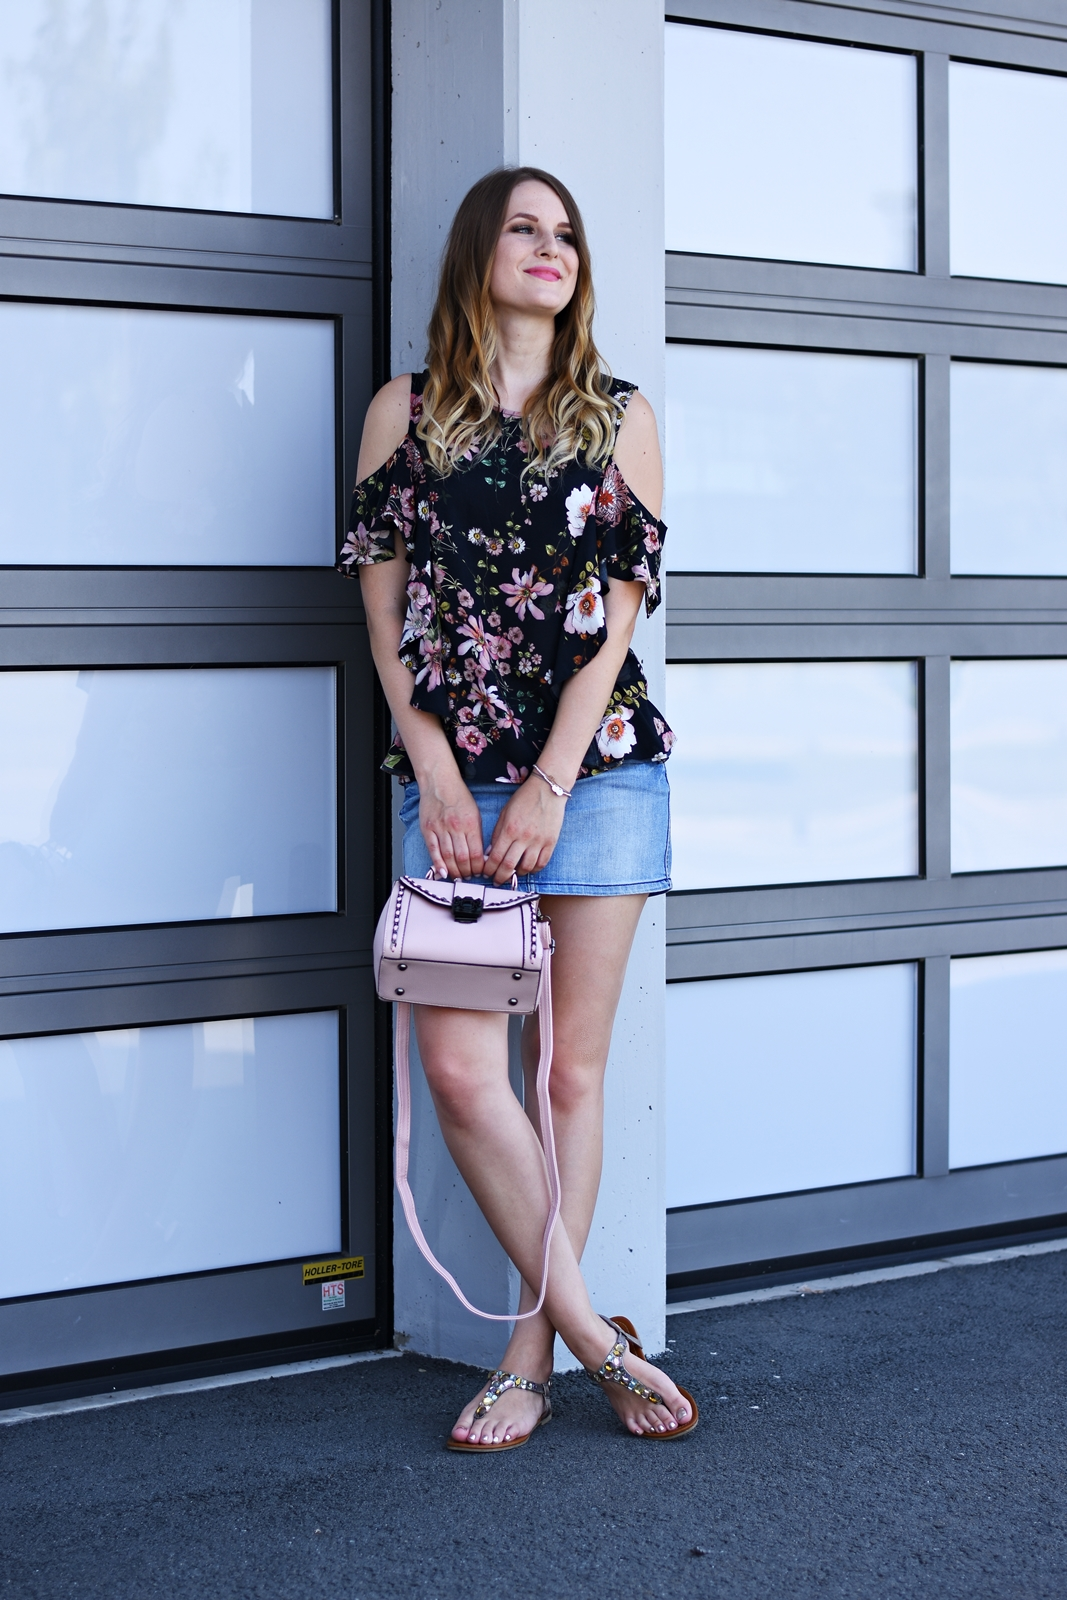 Jeansrock der Sommertrend - Streetstyle - Mode - Fashion - Trends - Blumenprint Bluse - Rosa Tasche - Fashionladyloves by Tamara Wagner Fashionblog